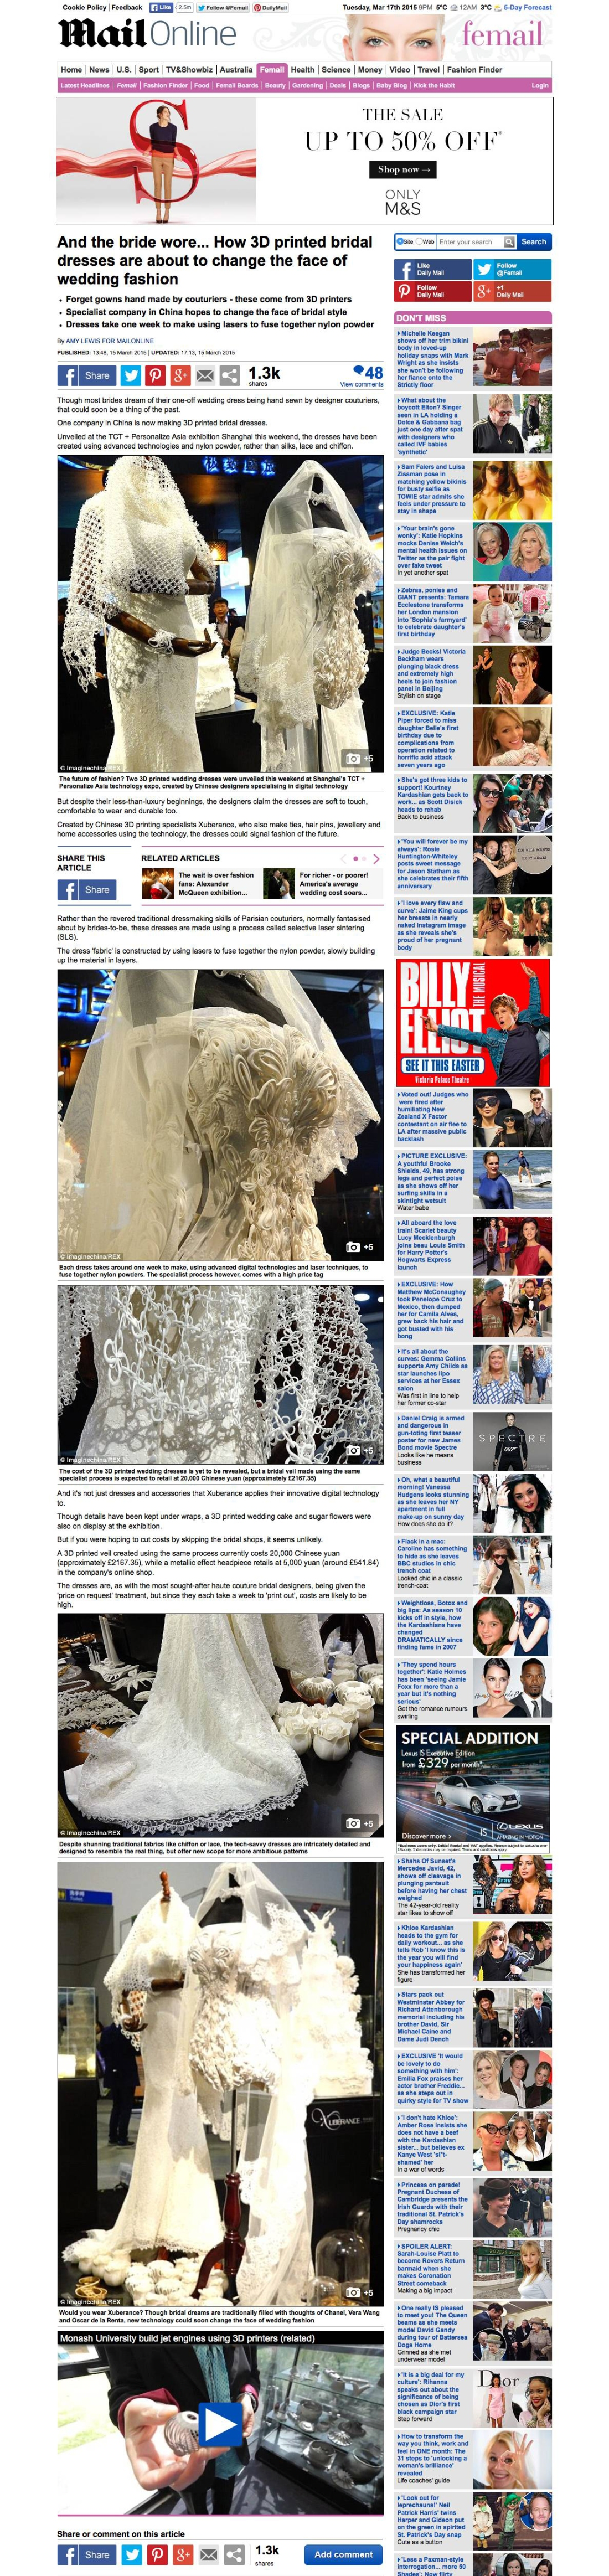 How_3D_printed_wedding_dresses_are_changing_the_face_of_bridal_fashion_Daily_Mail_Online_-_2015-03-17_20.40.54.png